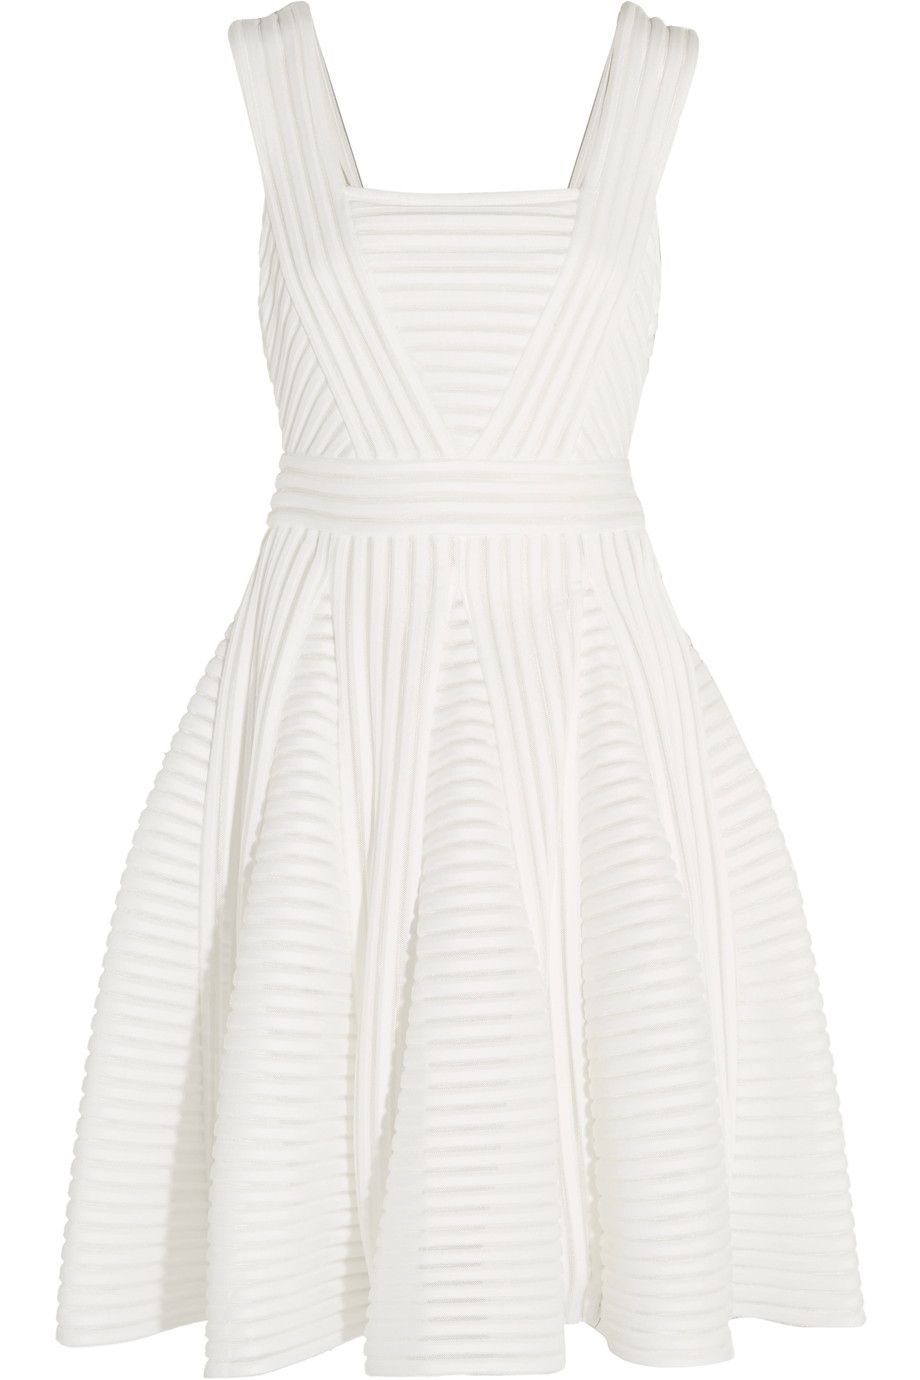 Pleated ribbed-knit dress | MAJE | Sale up to 70% off